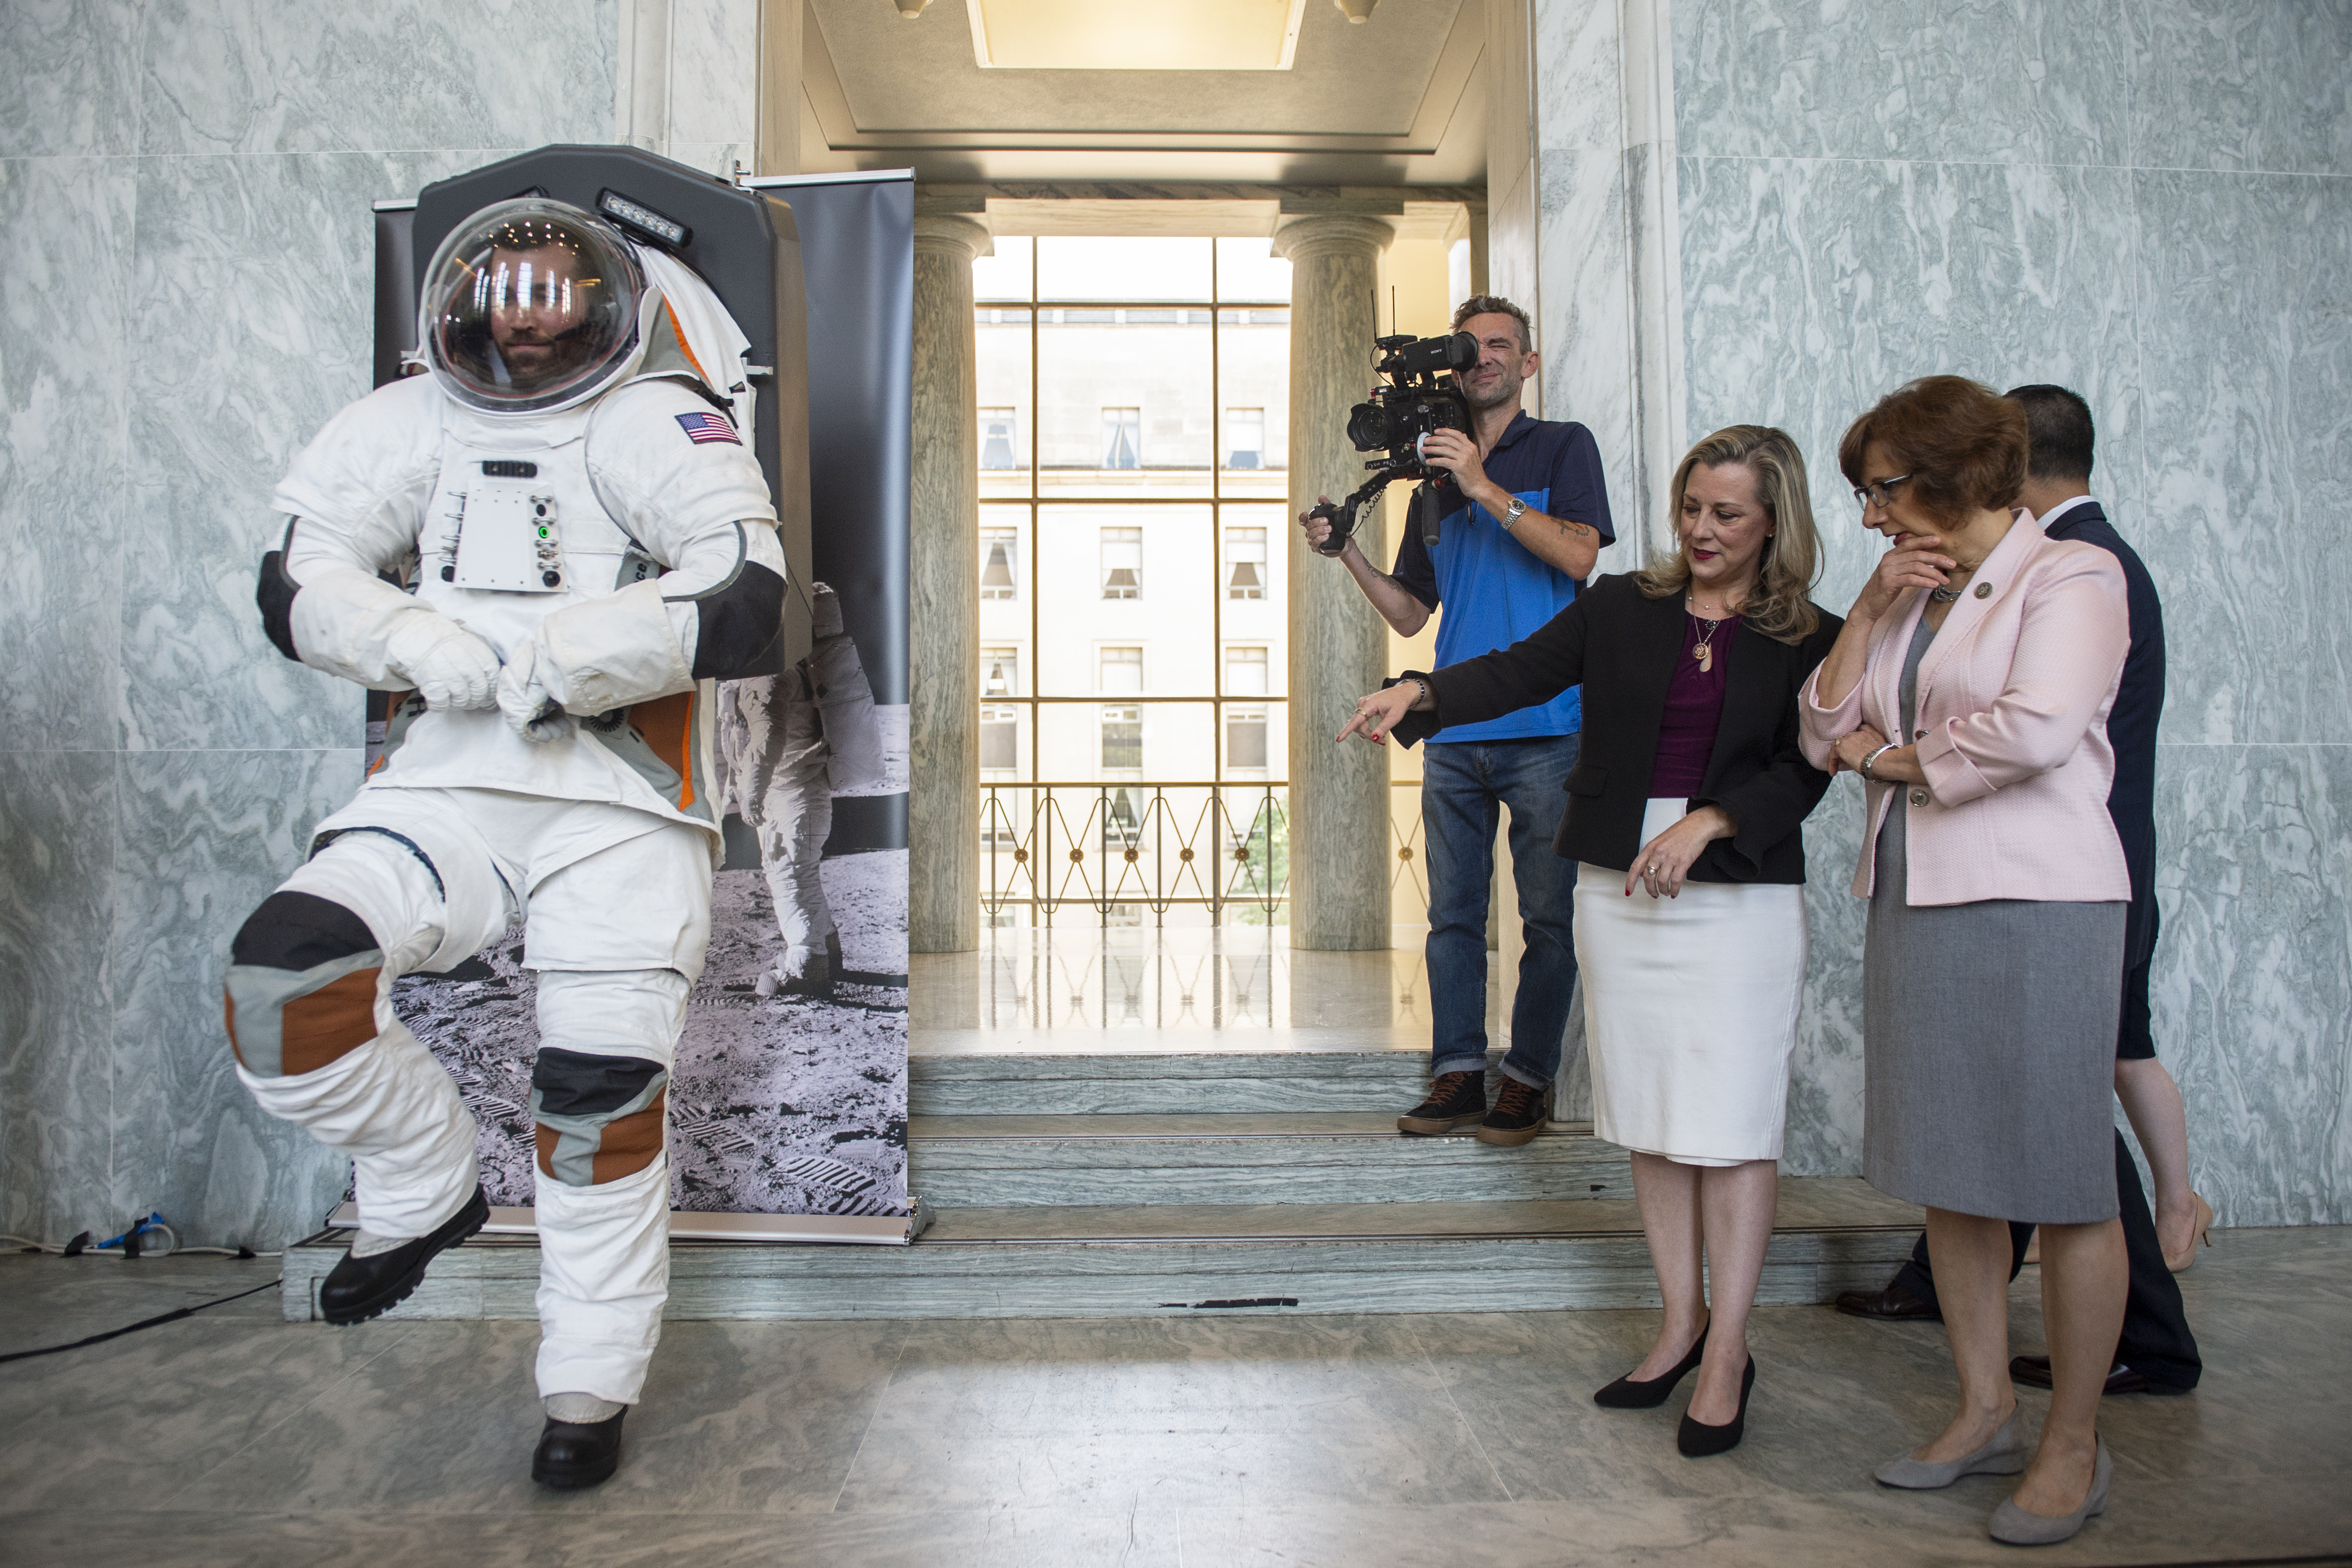 Rep. Suzanne Bonamici, D-Ore., right, and Space Subcommittee Chair Rep. Kendra Horn, D-Okla., look at a man modeling a possible prototype of the future suit for the upcoming mission to the moon in the Rayburn Building in Washington on Thursday July 25, 2019. (Photo by Caroline Brehman/CQ Roll Call)